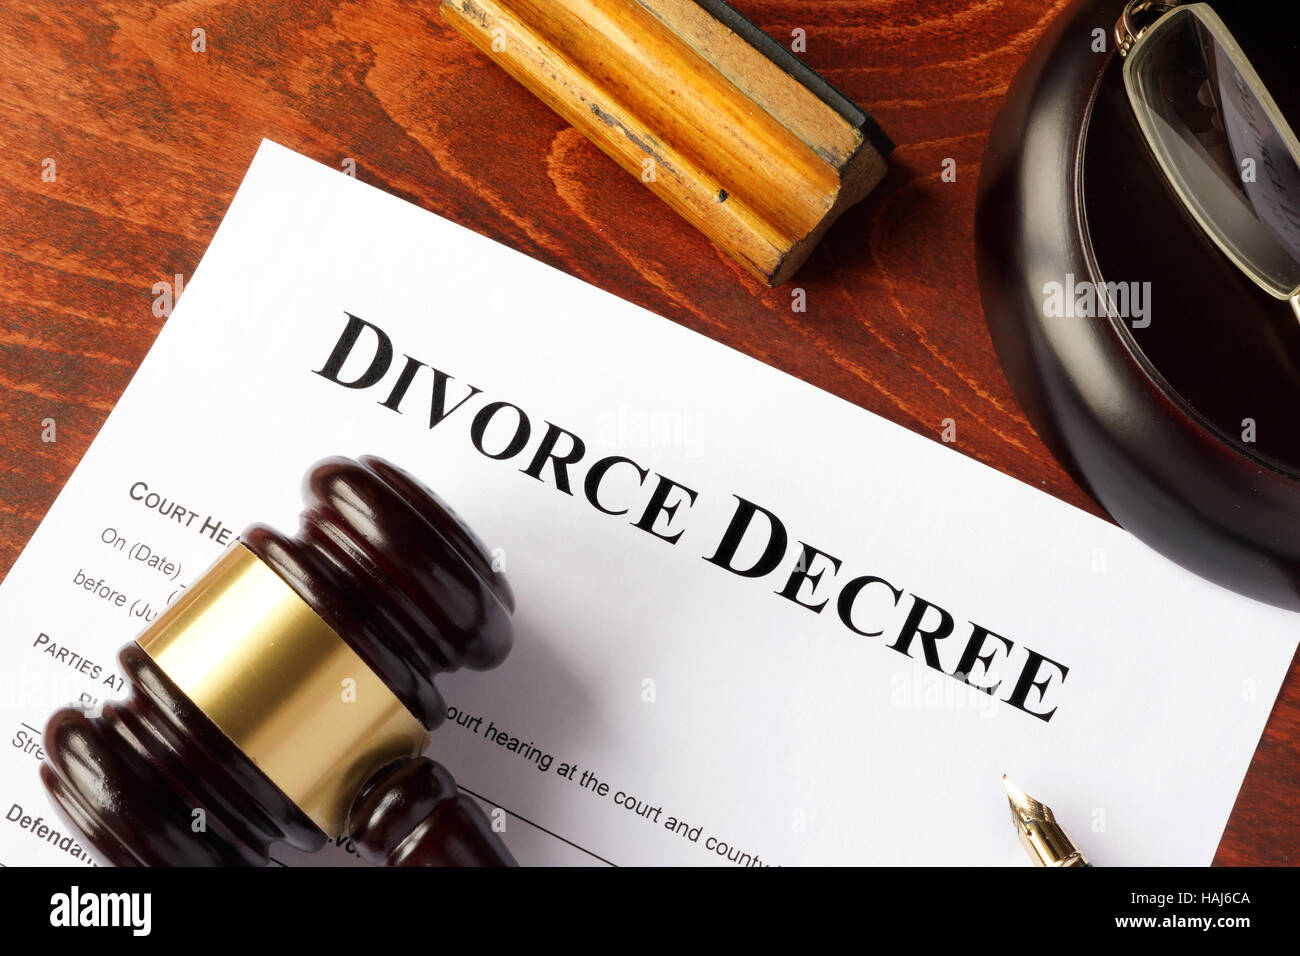 Divorce decree and gavel on a table. - Stock Image